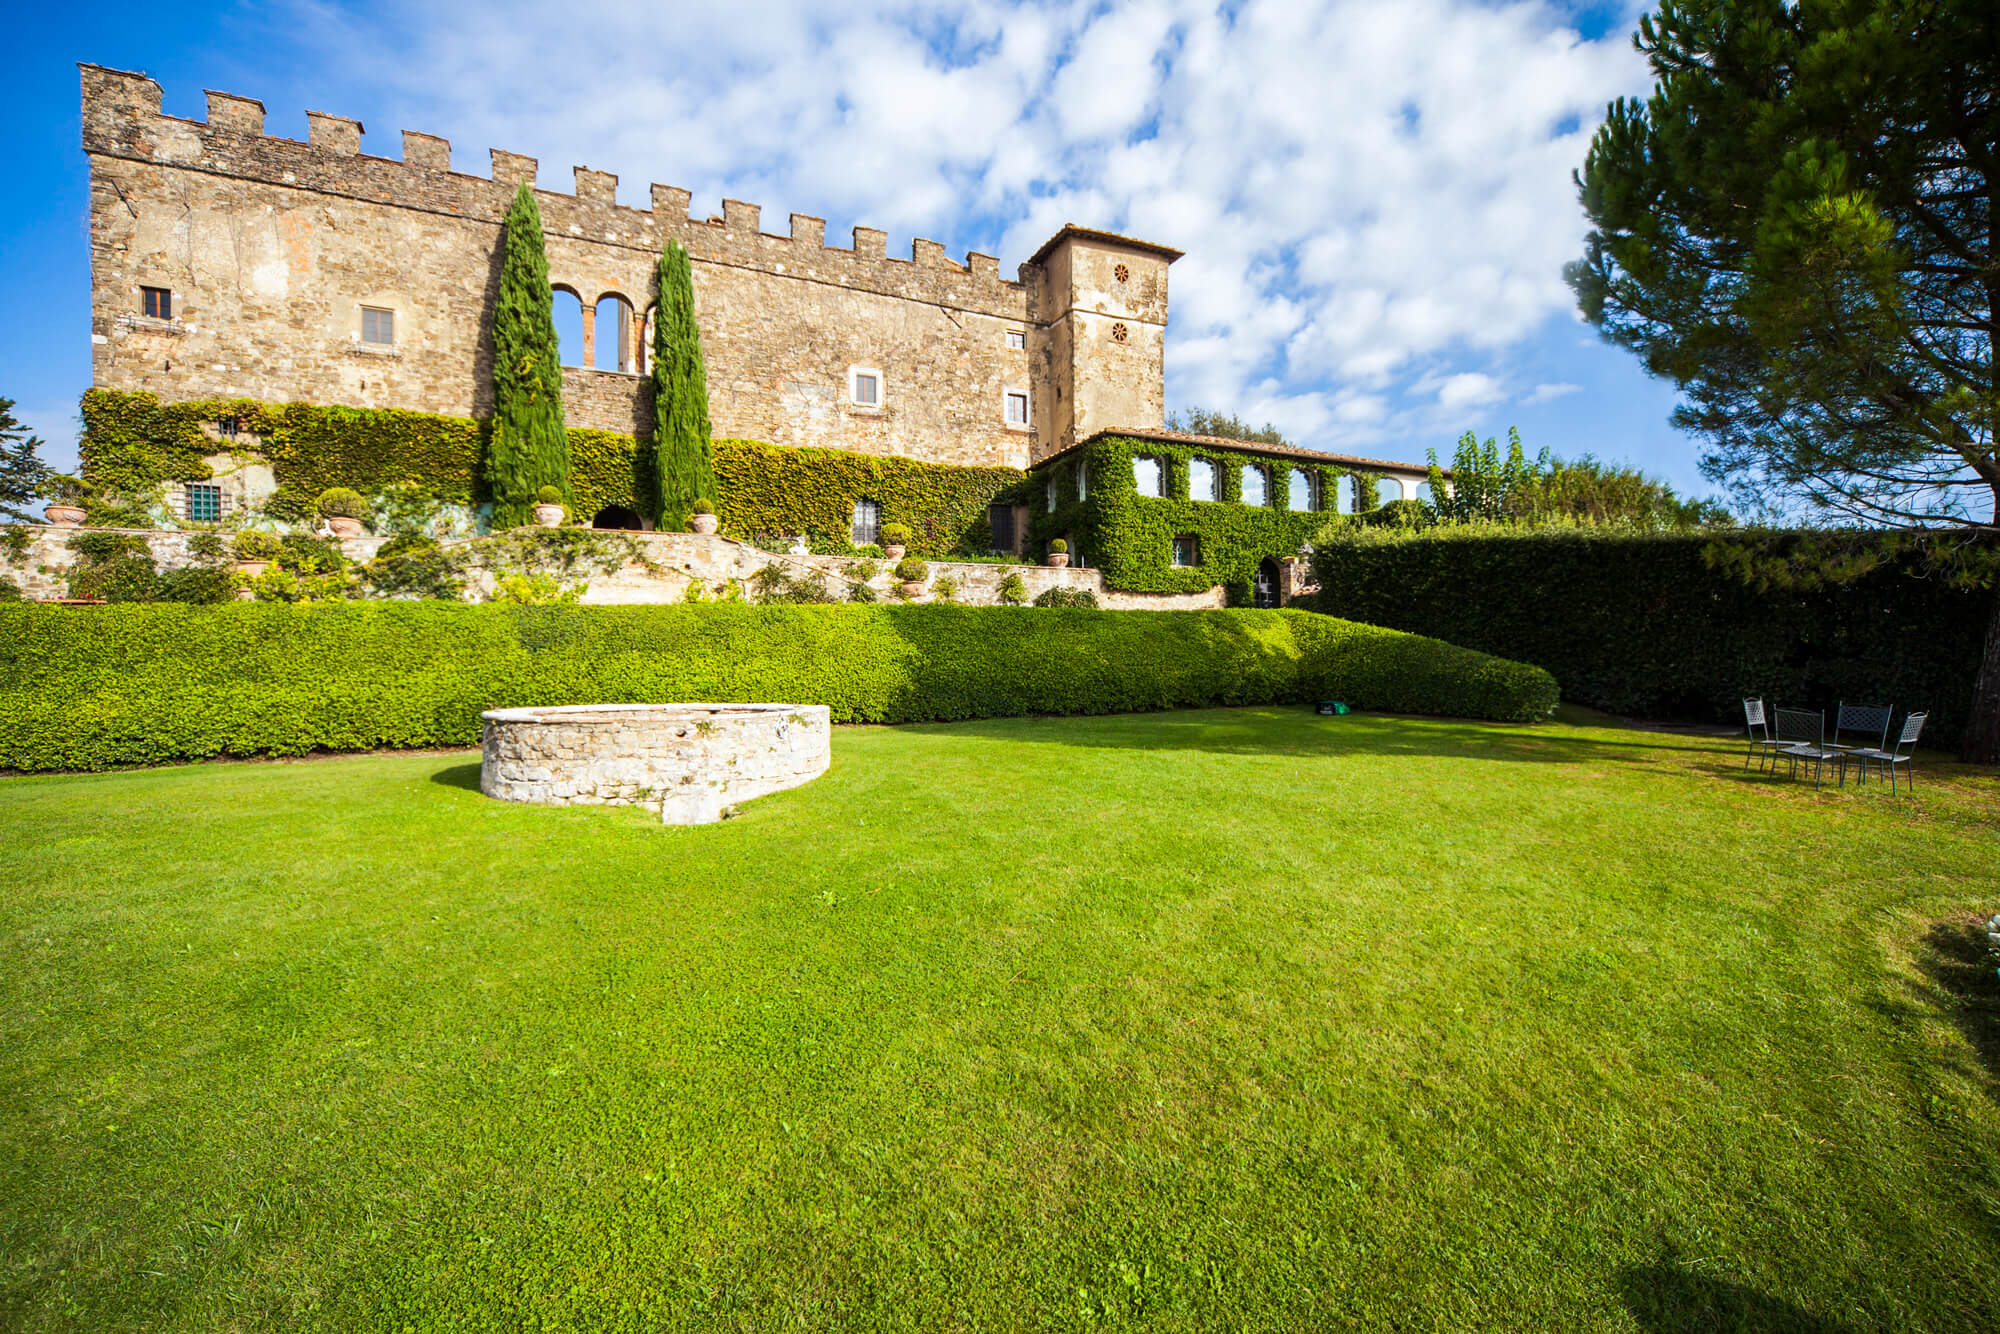 Castle Paneretta in Chianti region